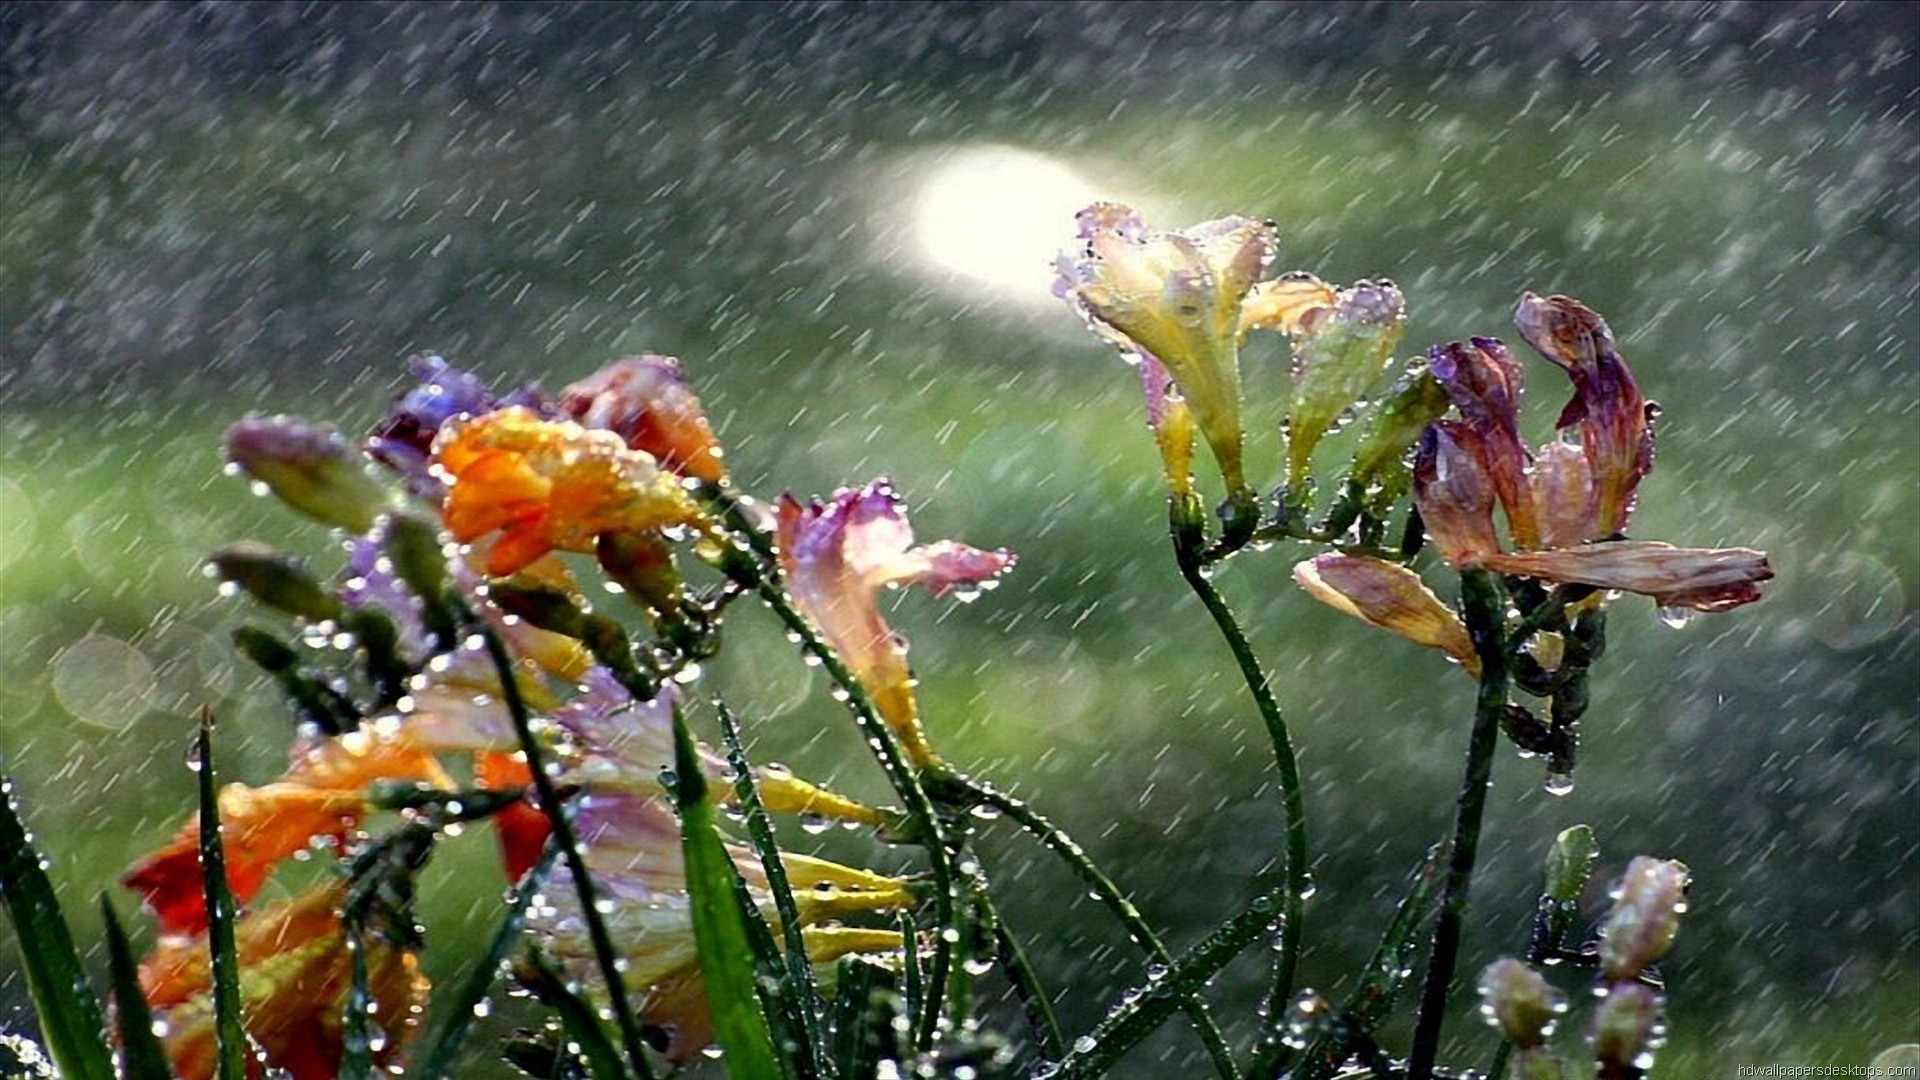 Rainy Spring Day Wallpaper Wallpapersafari